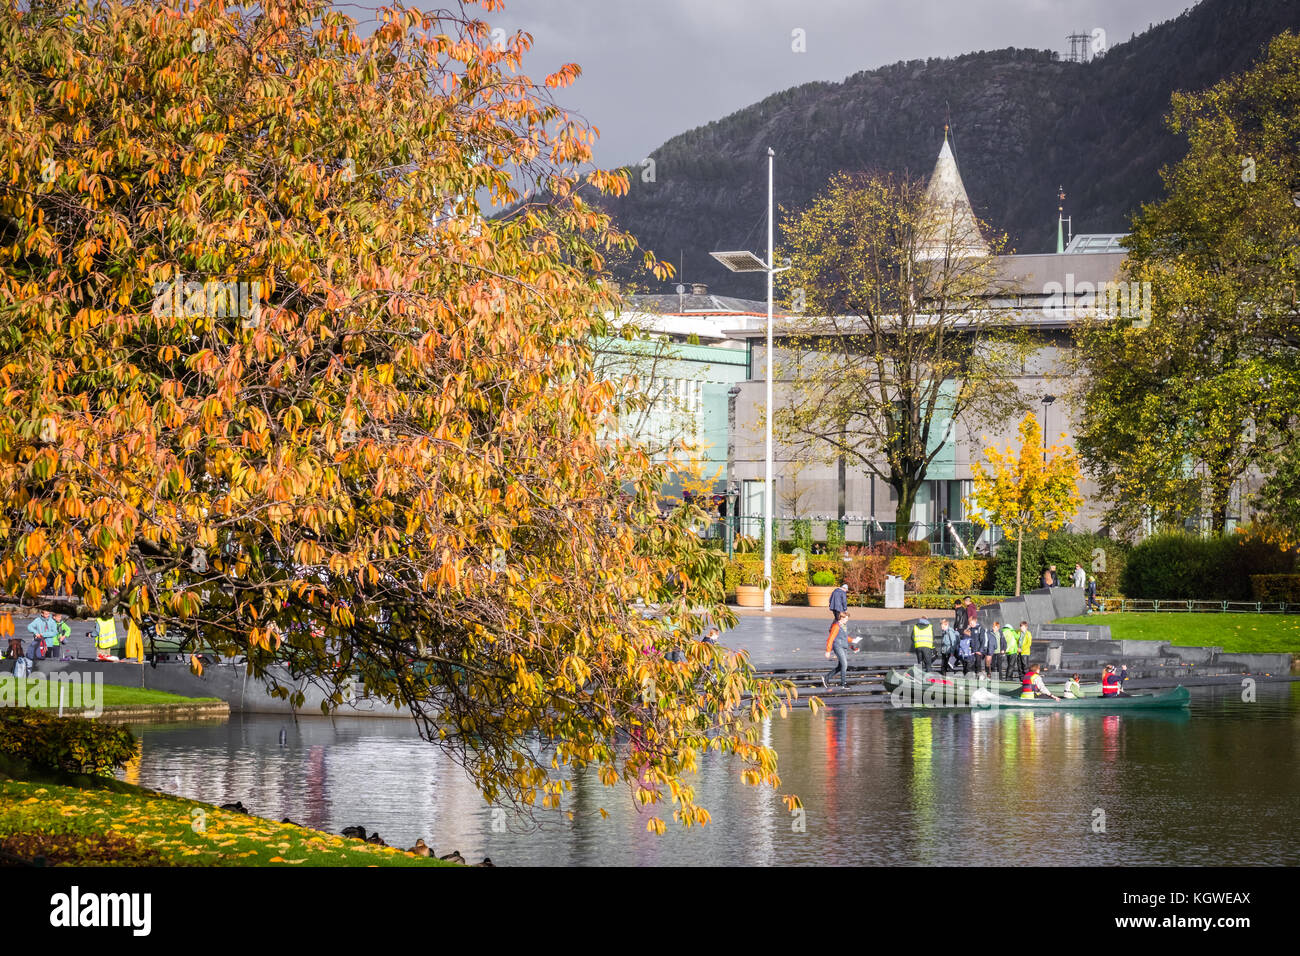 Bergen, Norway -  October 2017 : People about to embark on small boats on the Lille Lungegardsvannet small lake, - Stock Image